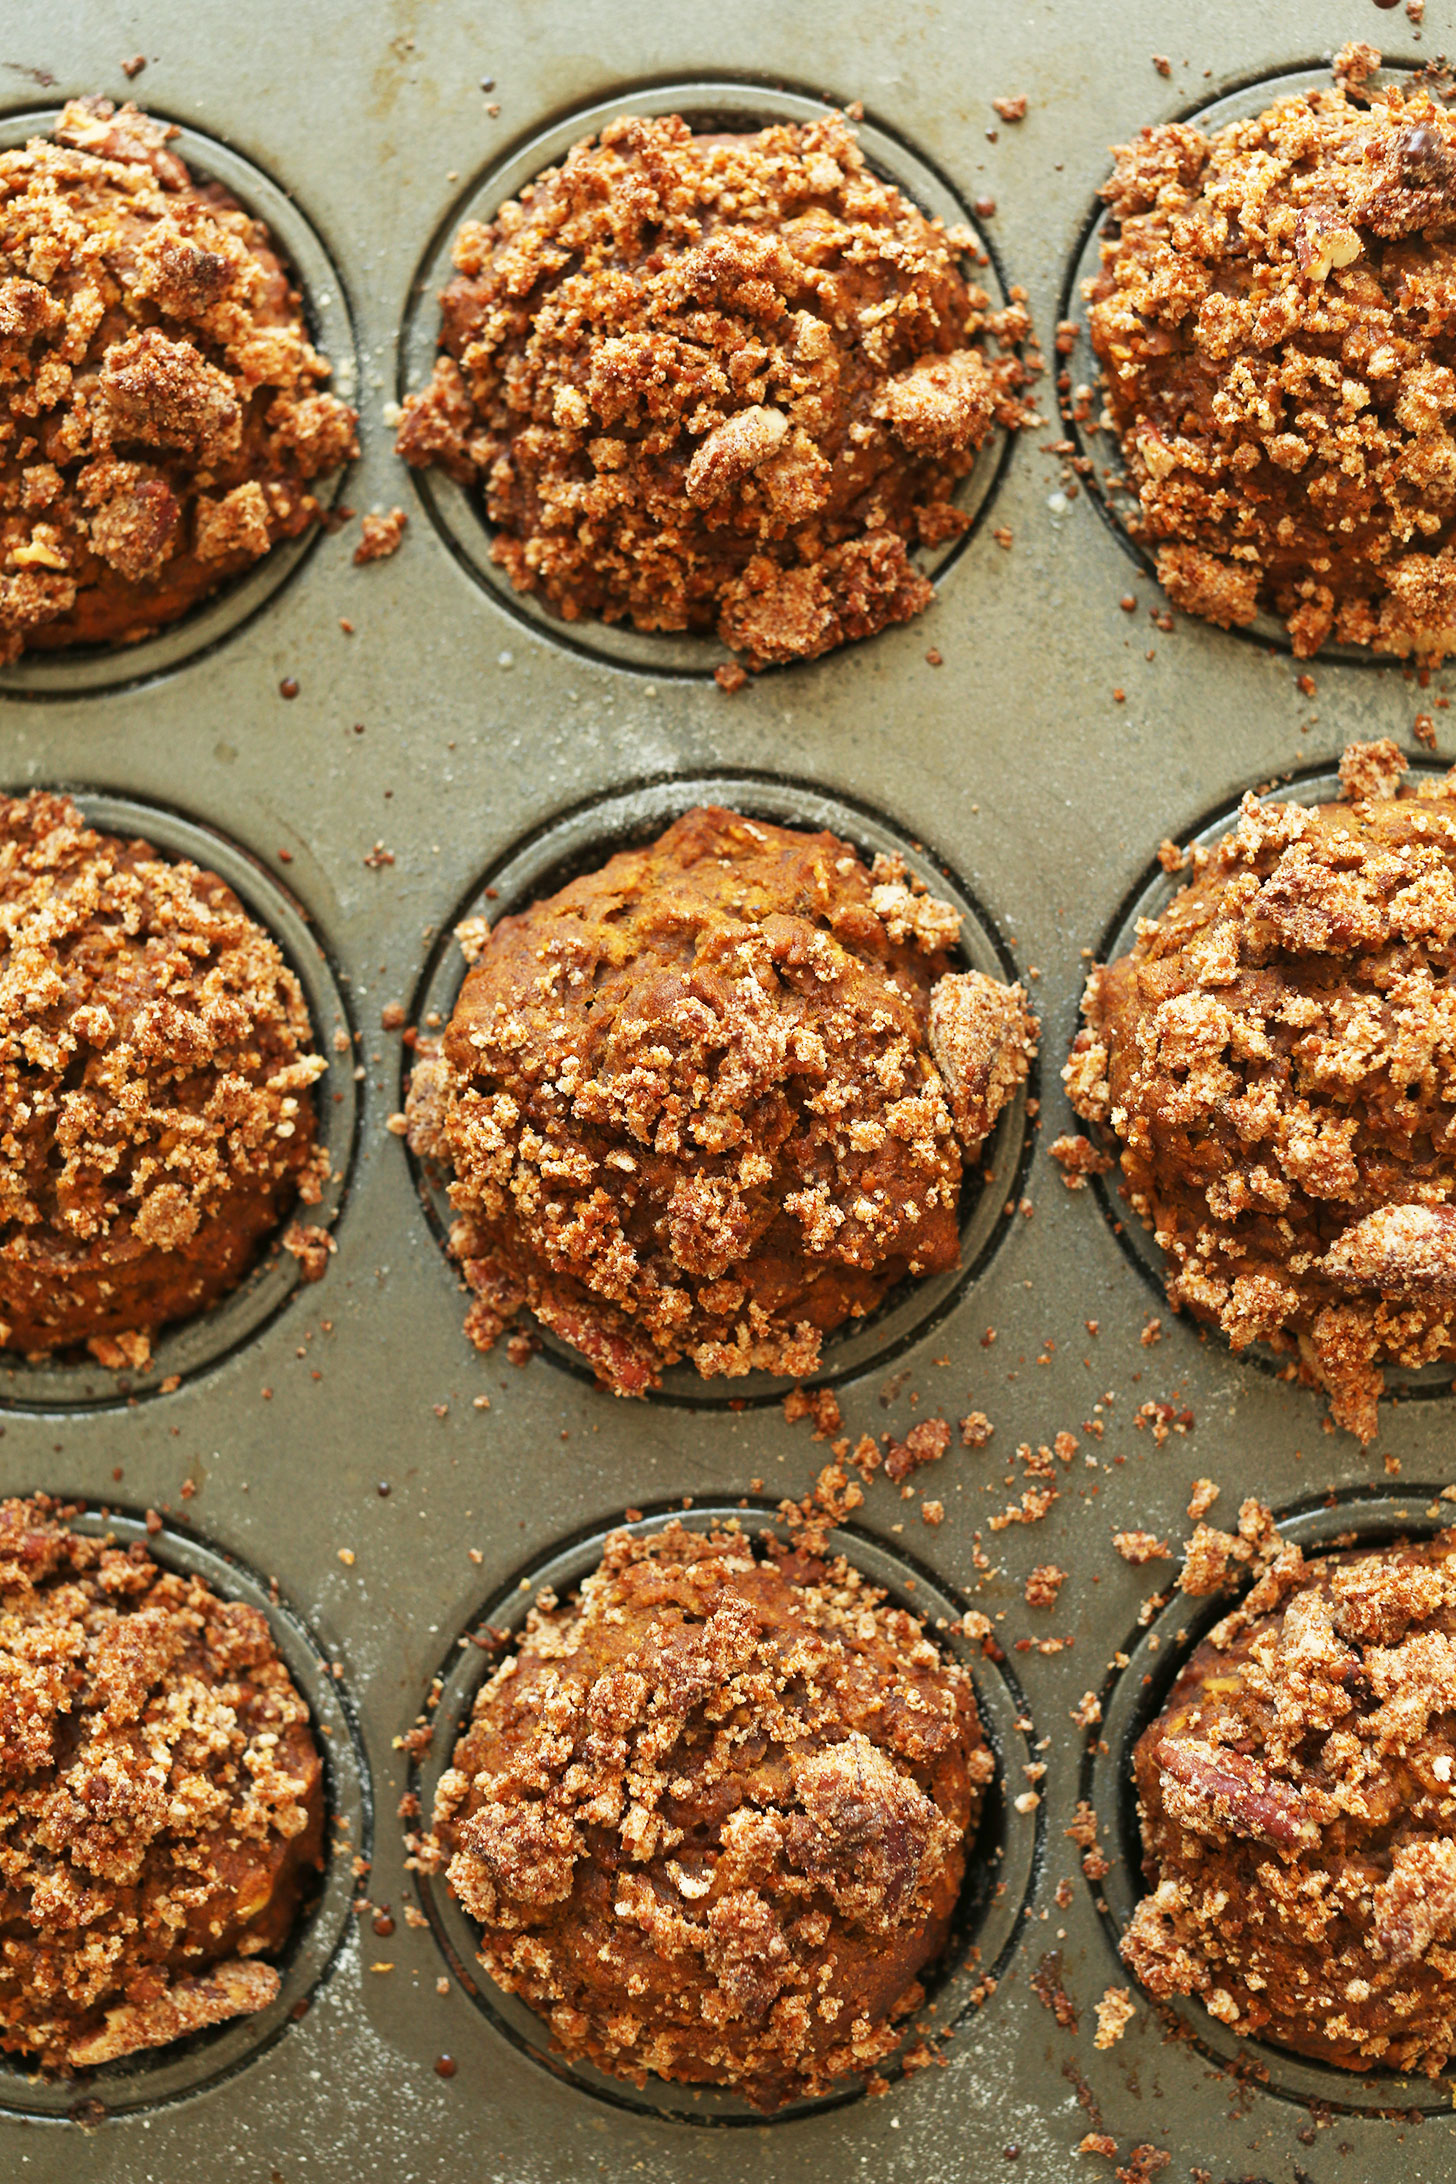 Muffin tin filled with freshly baked Vegan Pumpkin Spice Muffins with a Pecan Crumble Topping